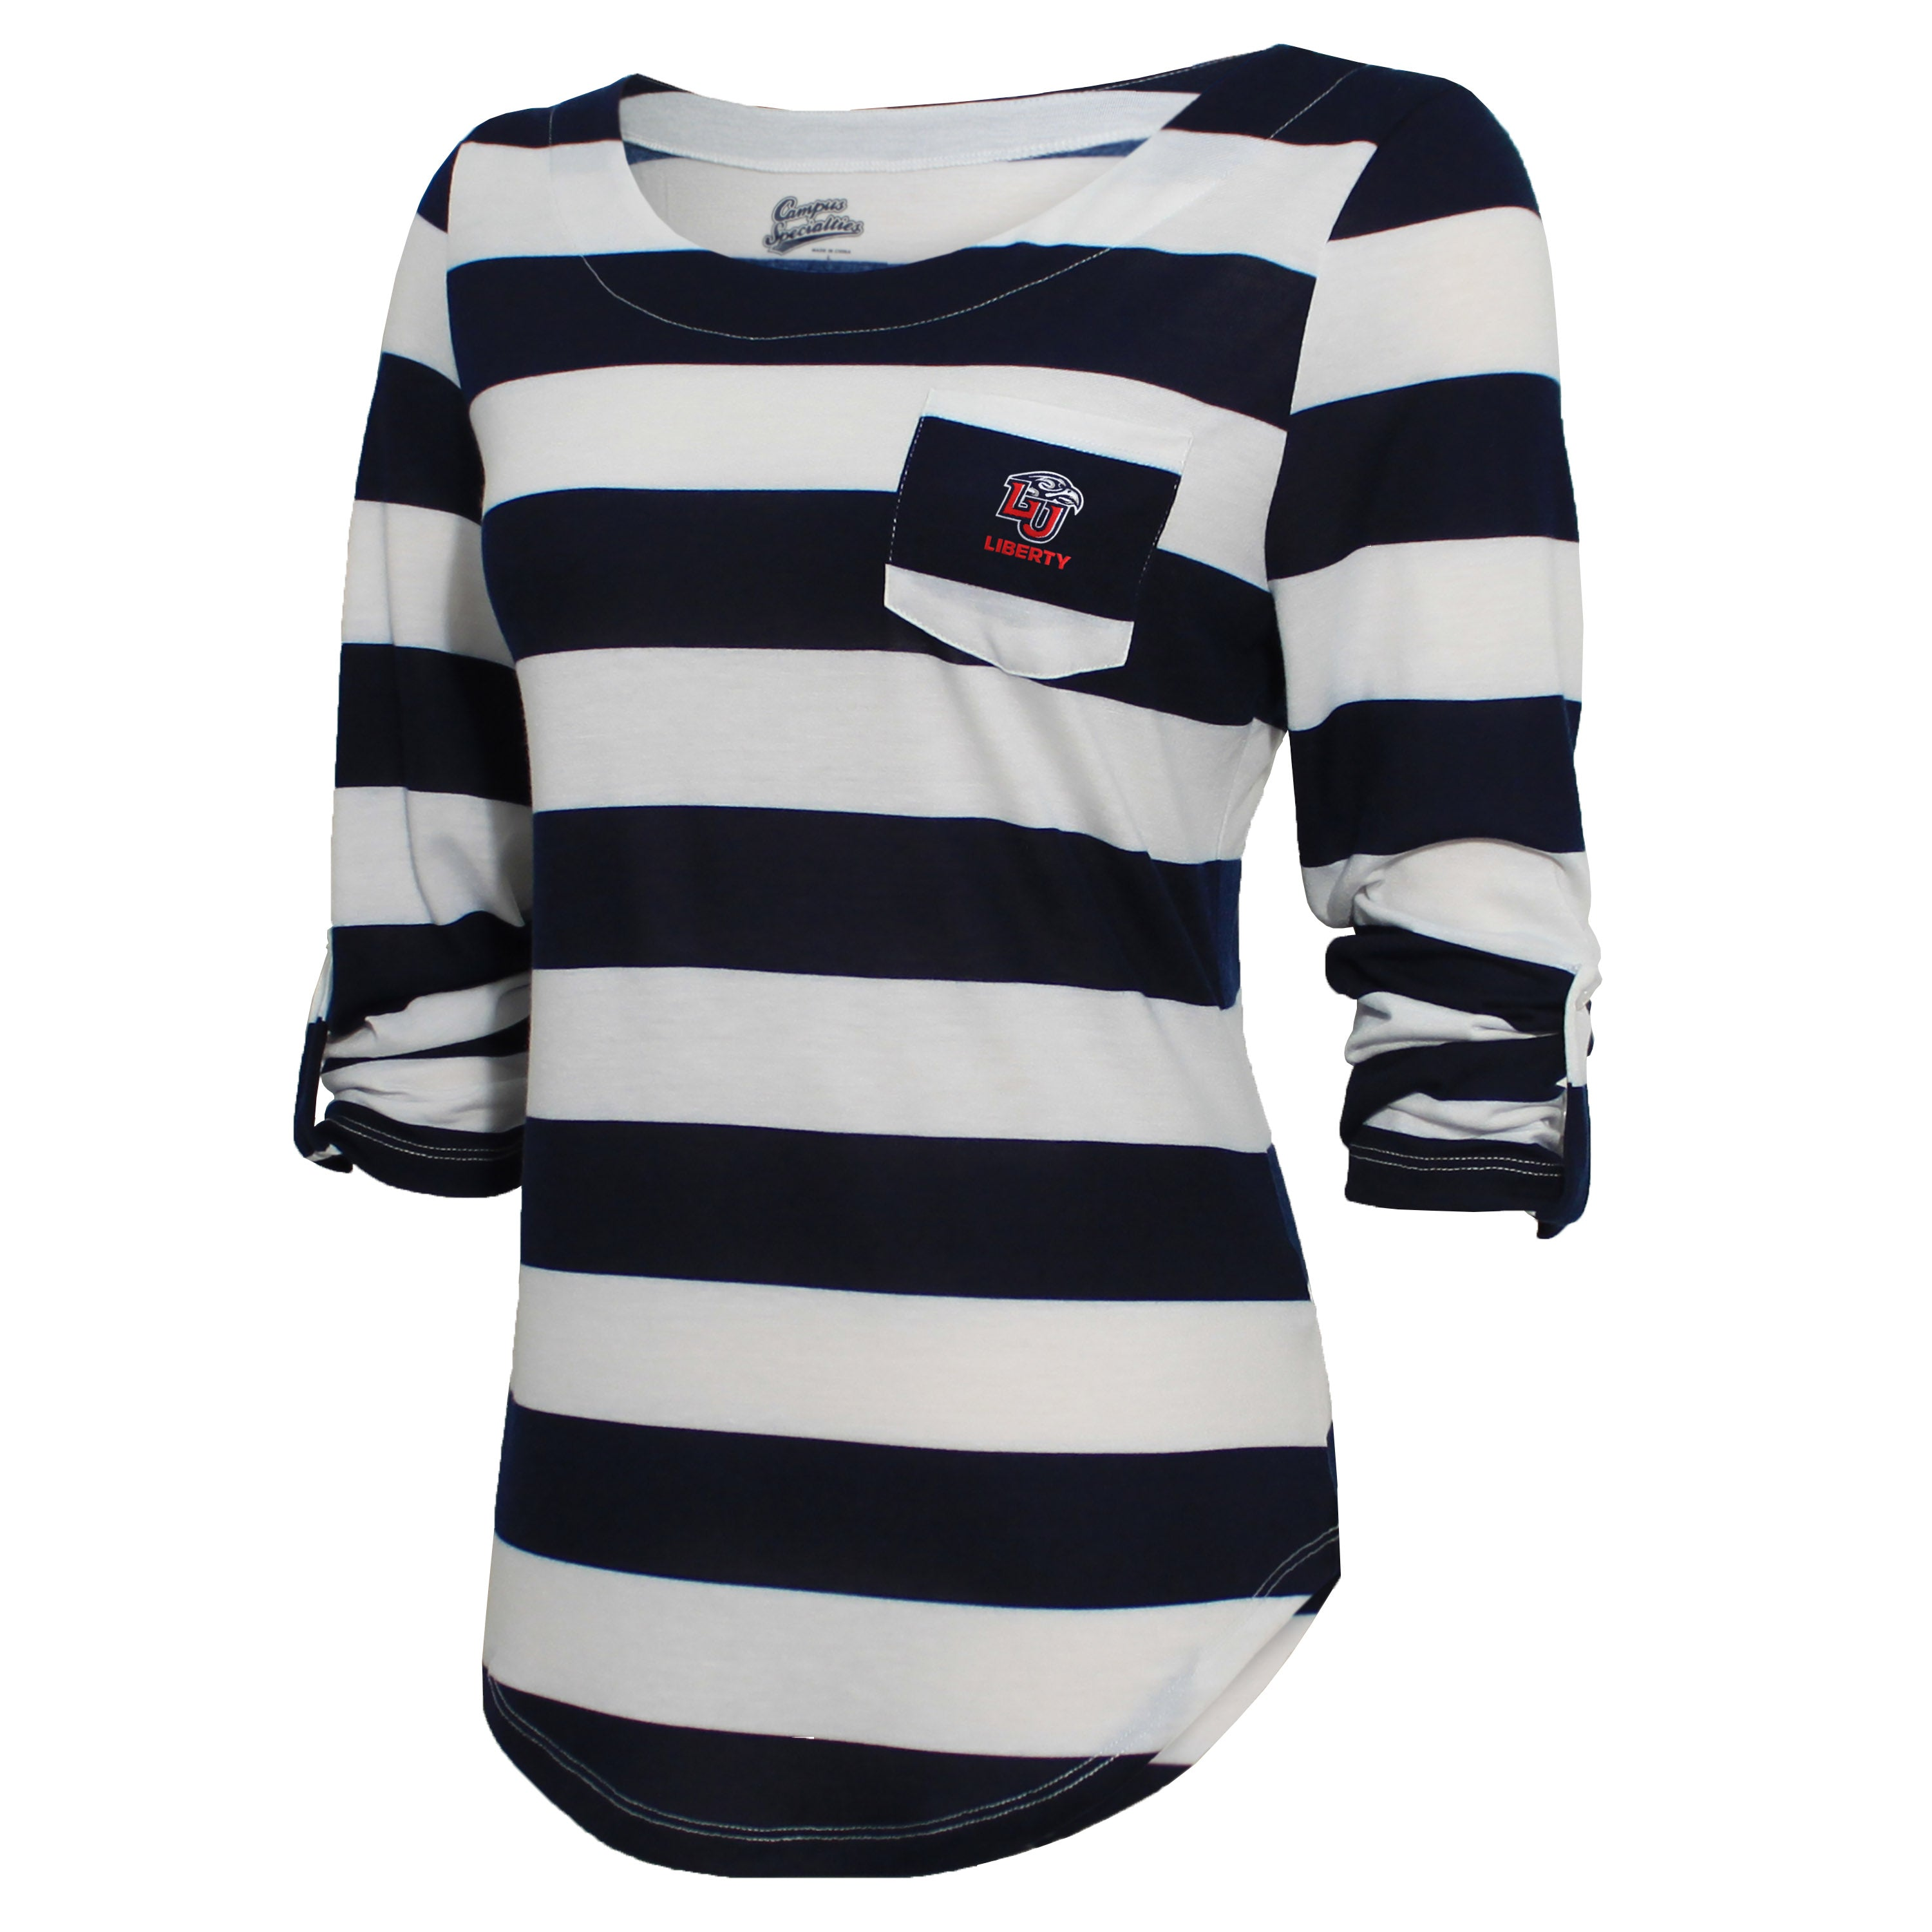 Campus Specialties Liberty Women's Navy Striped Pocket Top